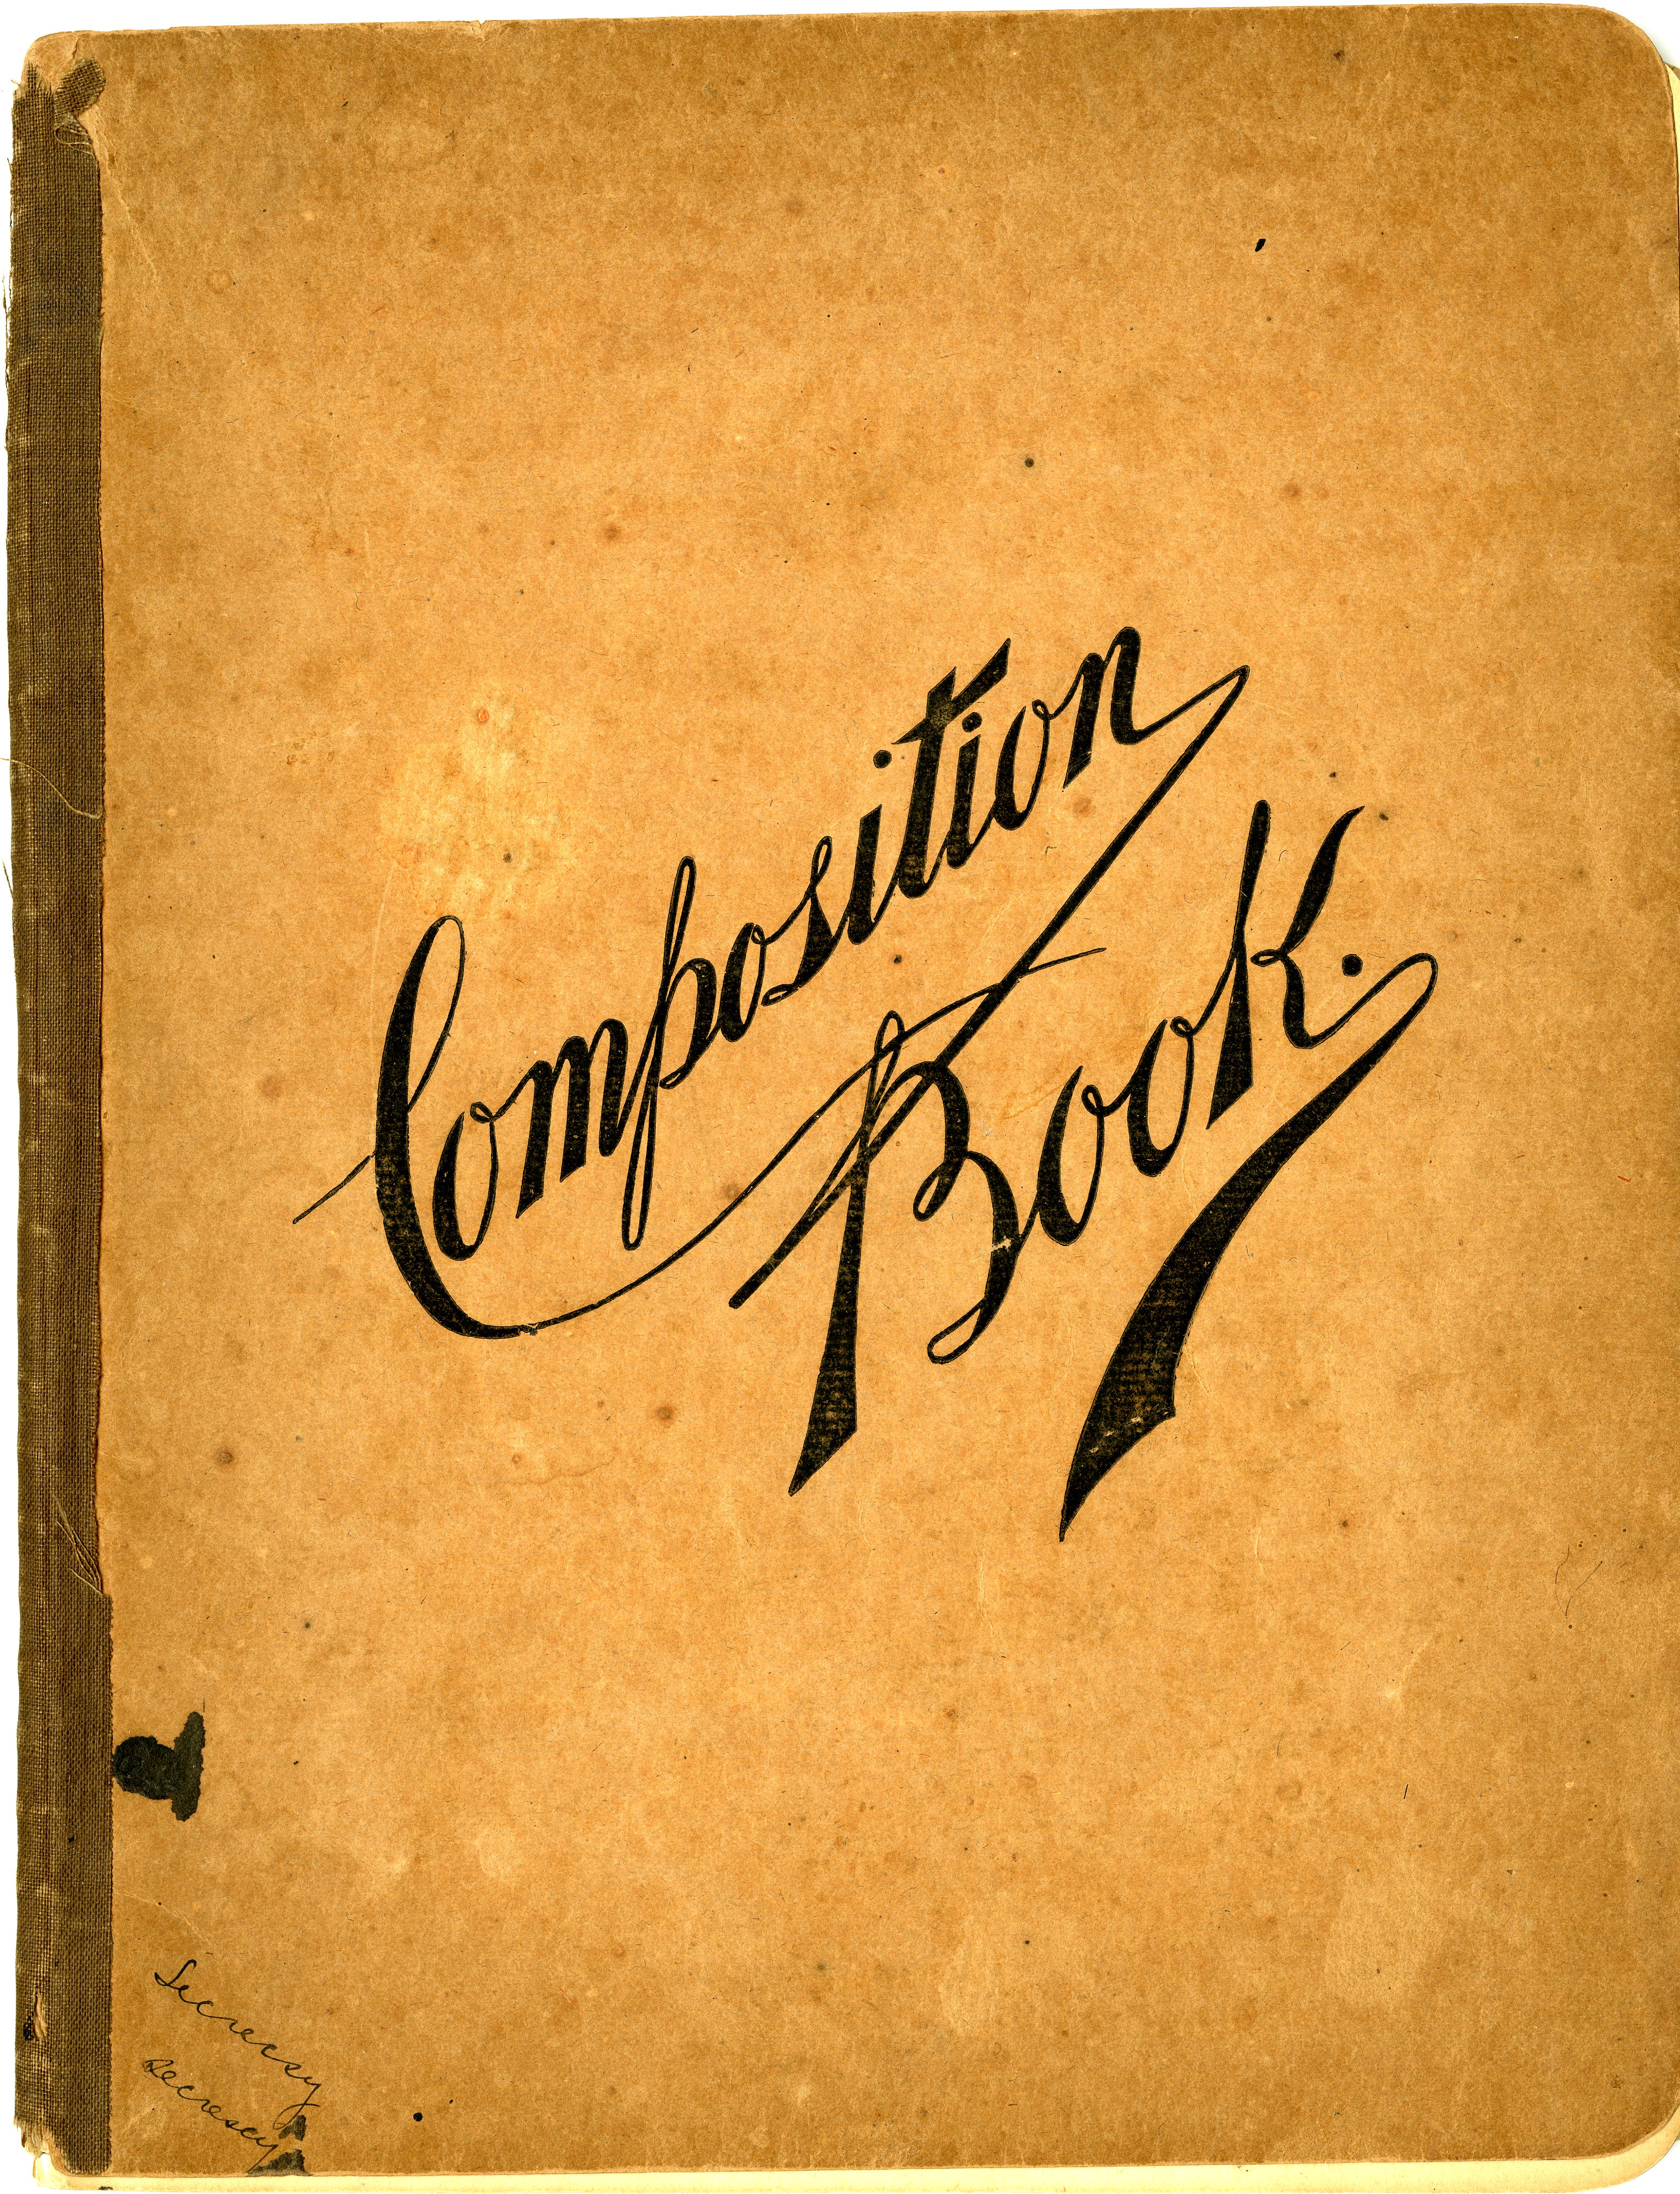 Dunbar-Nelson, Alice. Composition Book, 1897, from the Alice Dunbar-Nelson papers